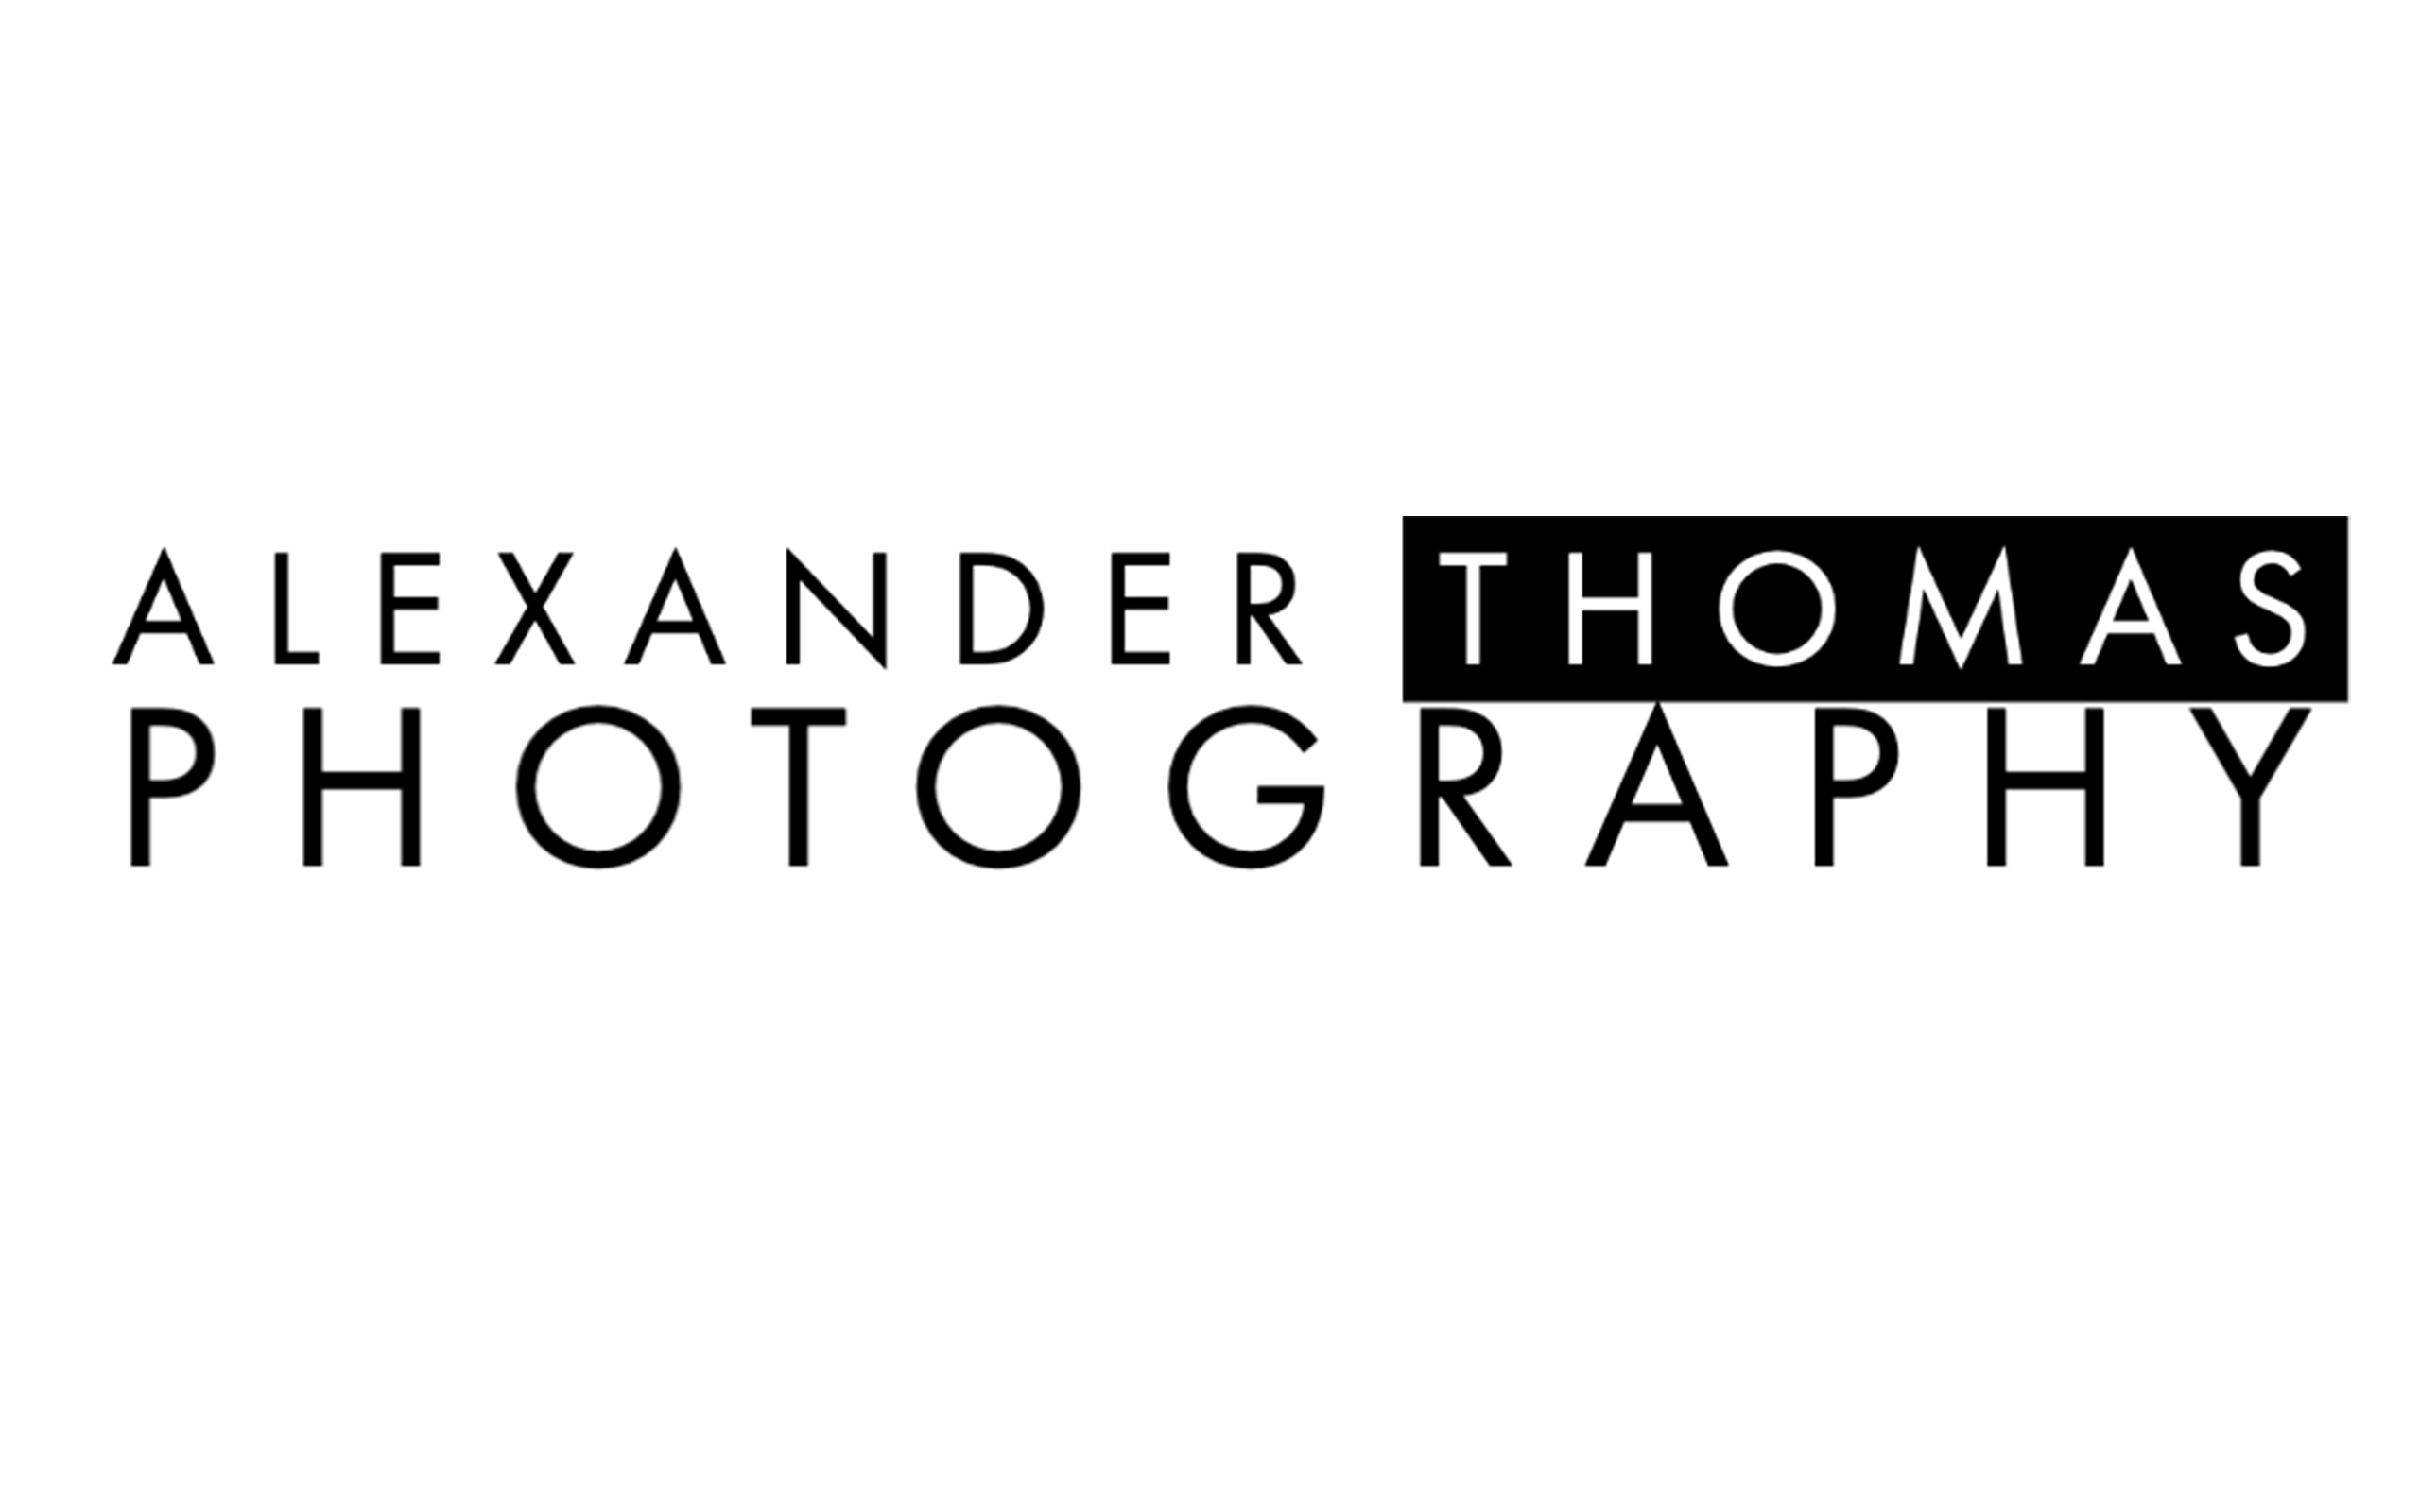 Alexander Thomas Photography